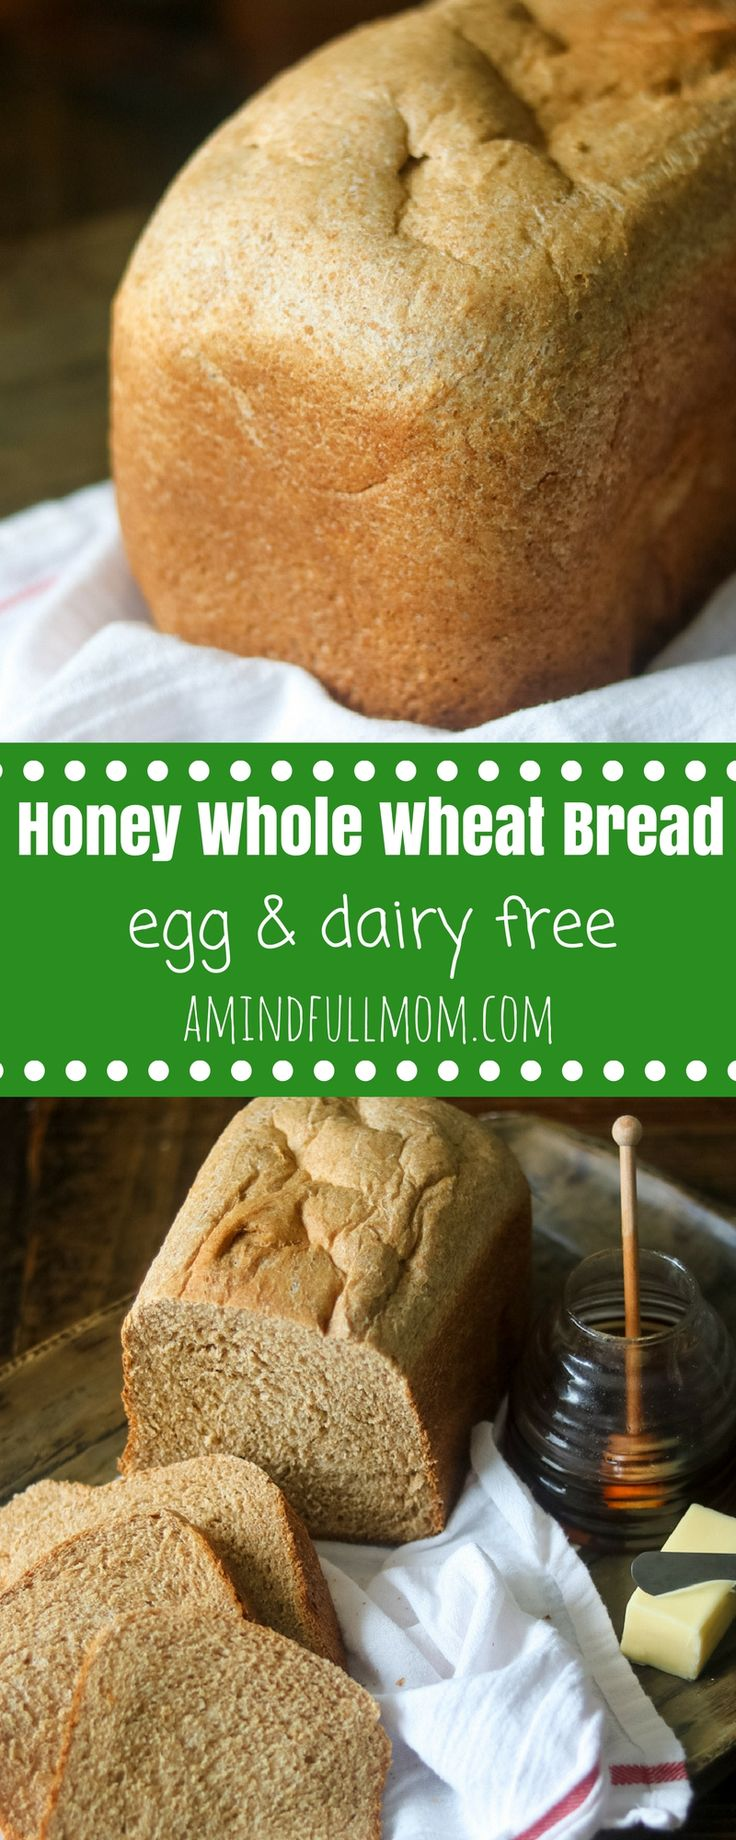 Homemade Honey Whole Wheat Bread: After one bite of this tender whole wheat bread recipe, you will never go back to store-bought bread again! This is an EASY recipe for 100% whole wheat bread your family will fall in love with. Directions for making whole wheat bread in bread machine and in oven. #bread #wholewheat #eggfree #dairyfree via @amindfullmom